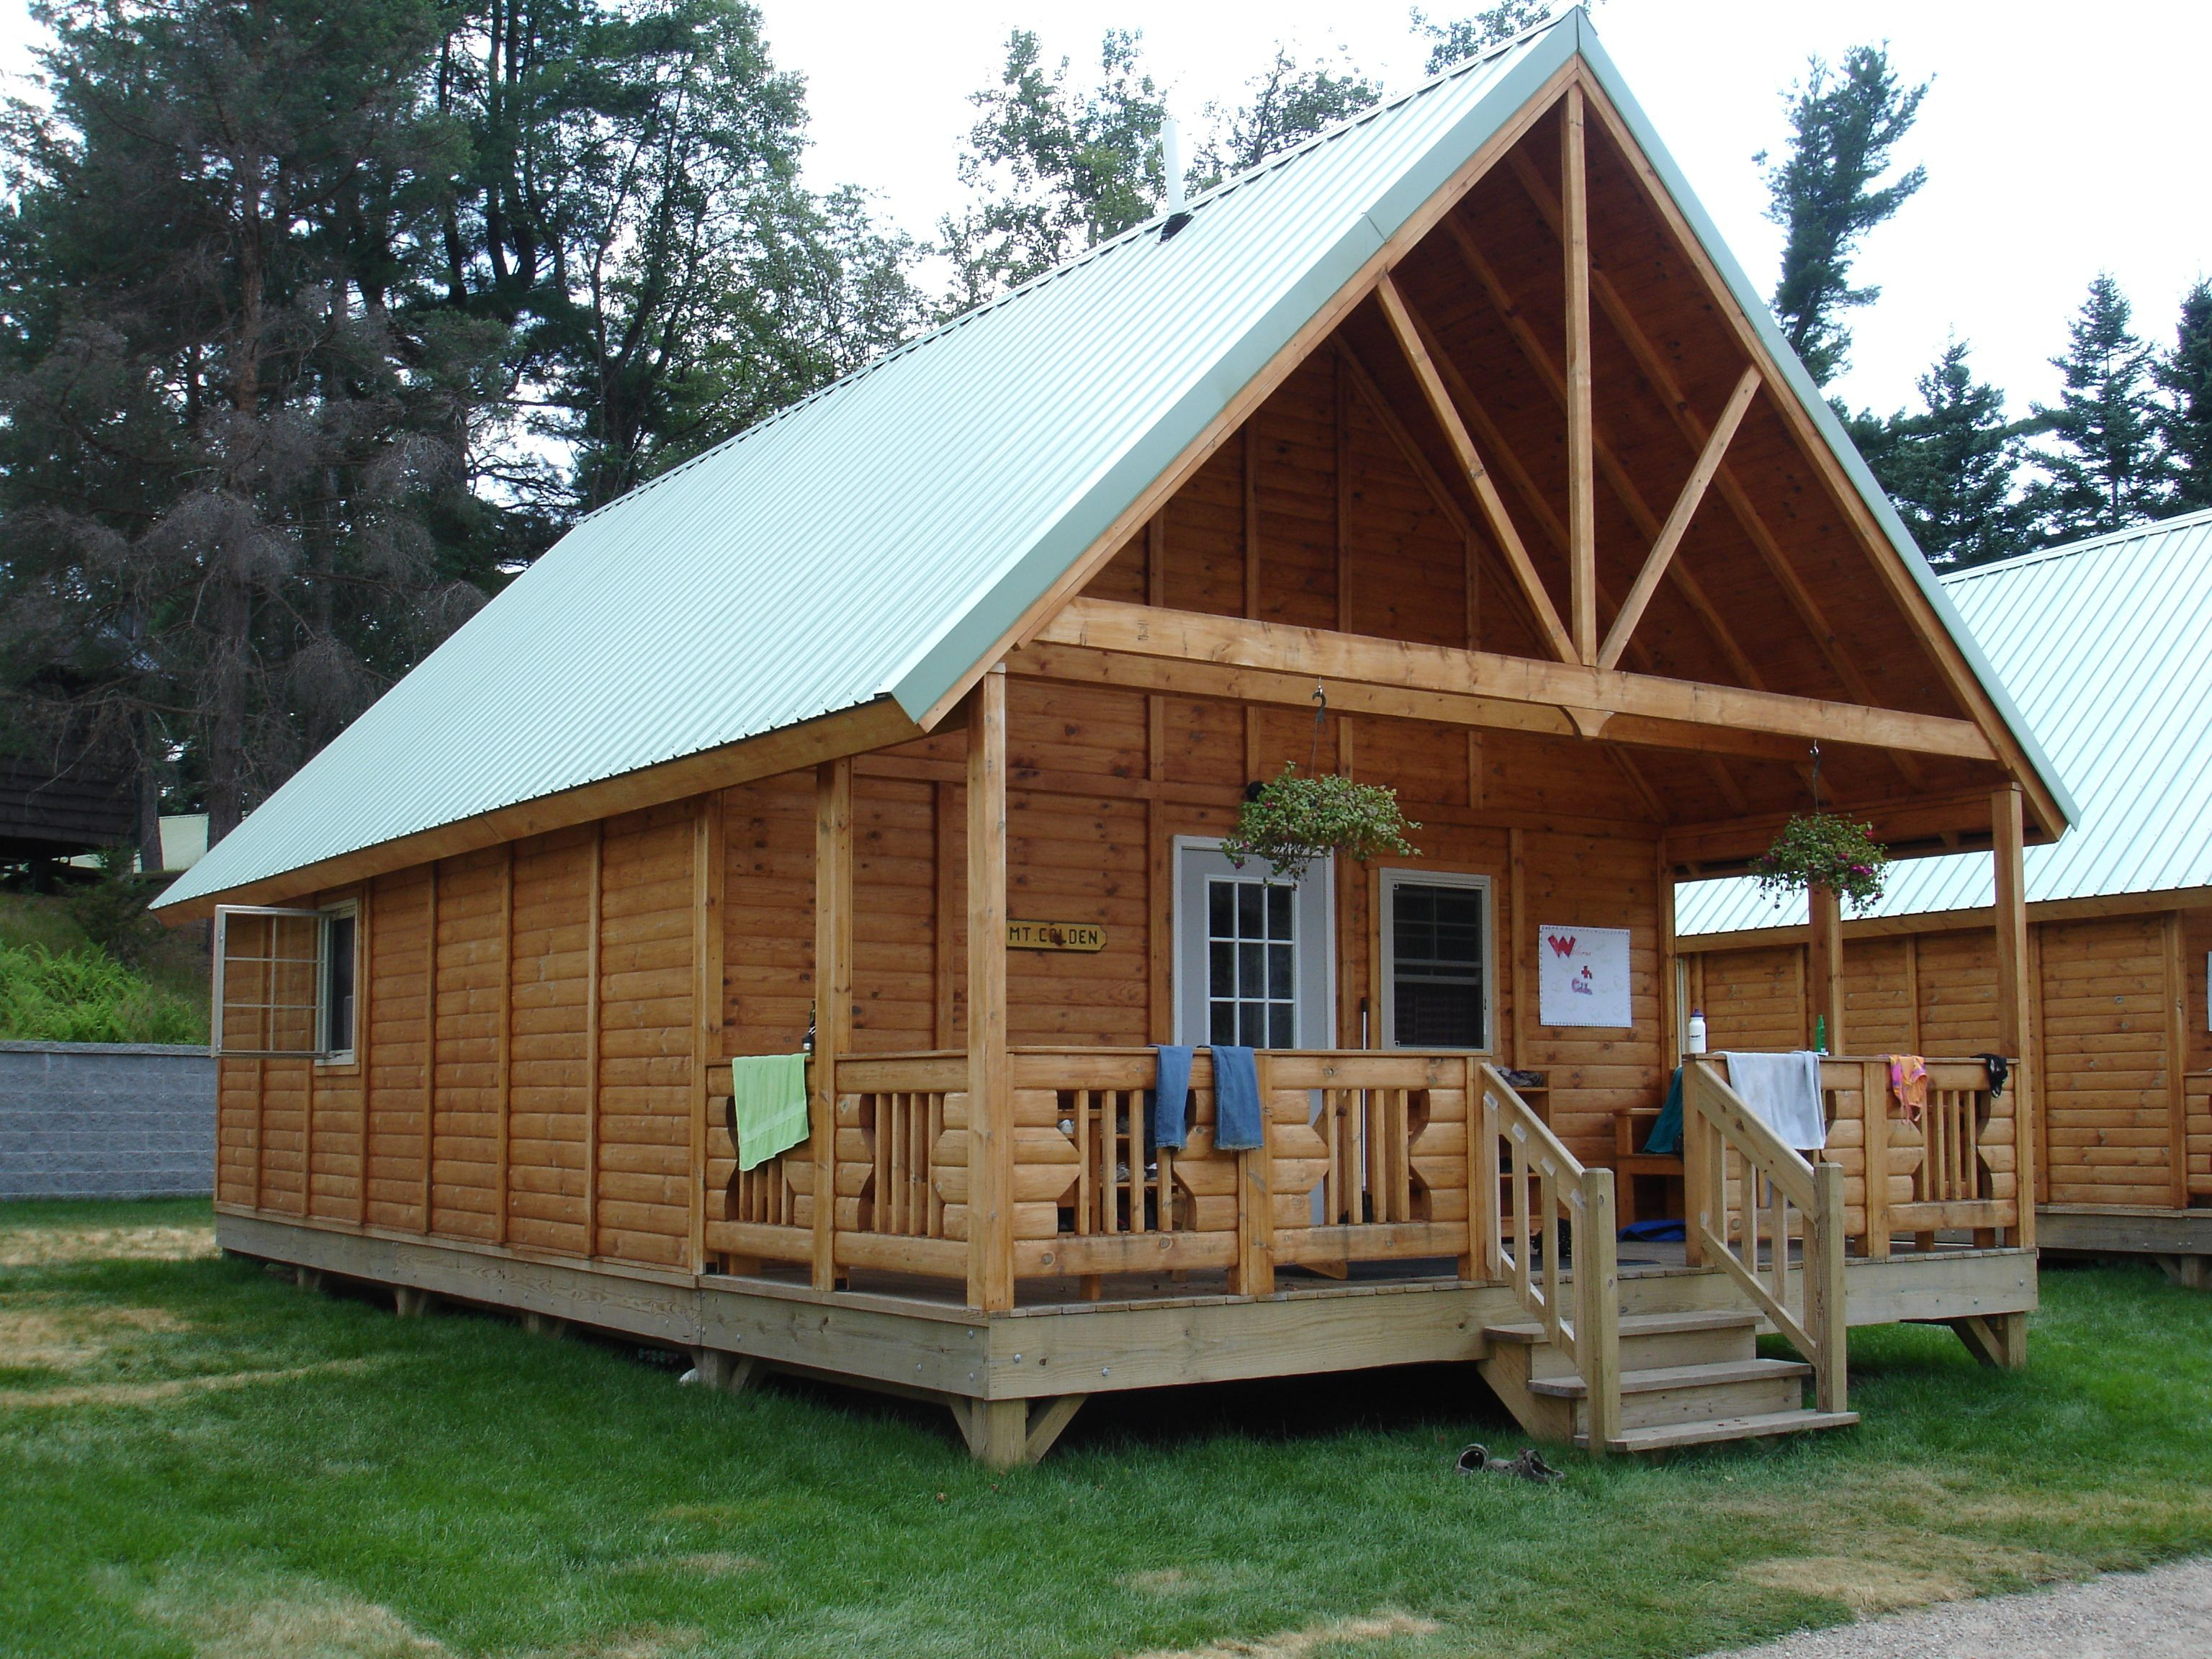 log mobile homes with lofts hunting cabins for sale ForLoft Cabins For Sale